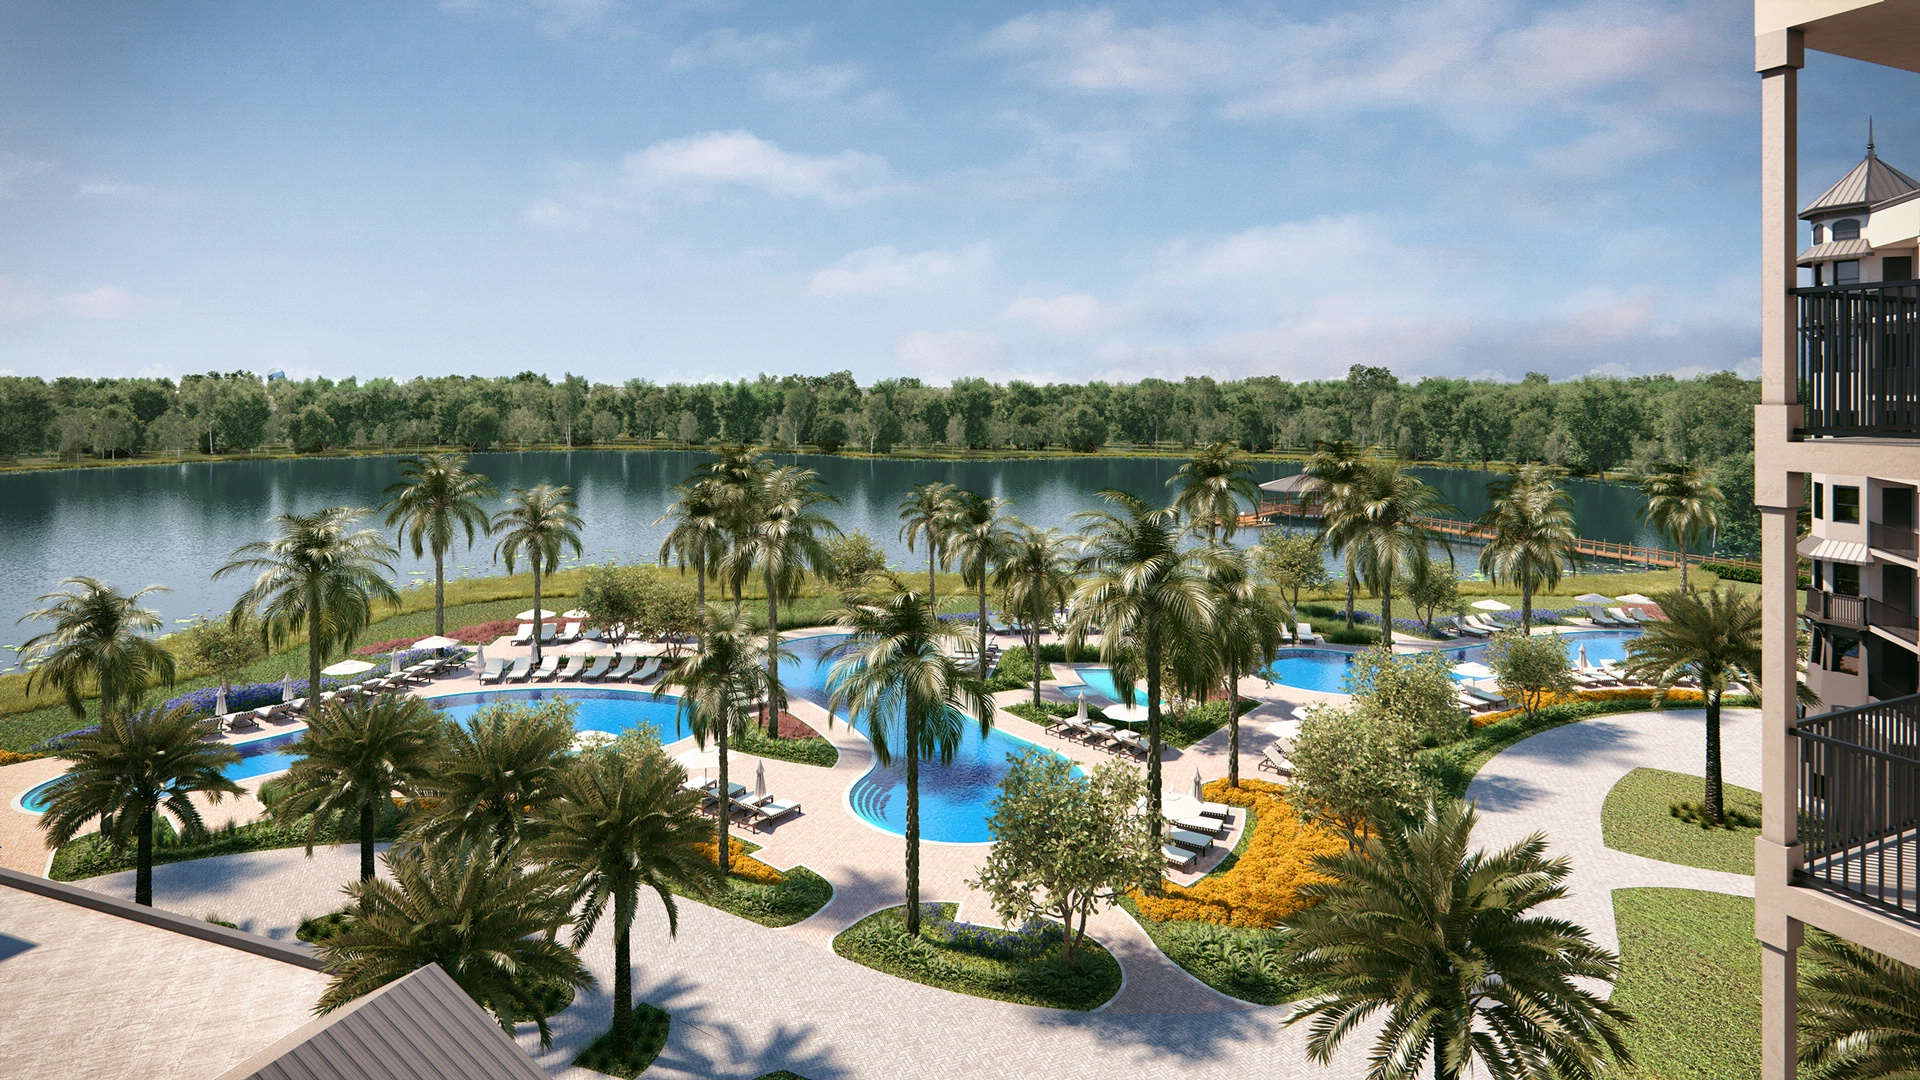 Outdoor Pools at The Grove Resort Orlando